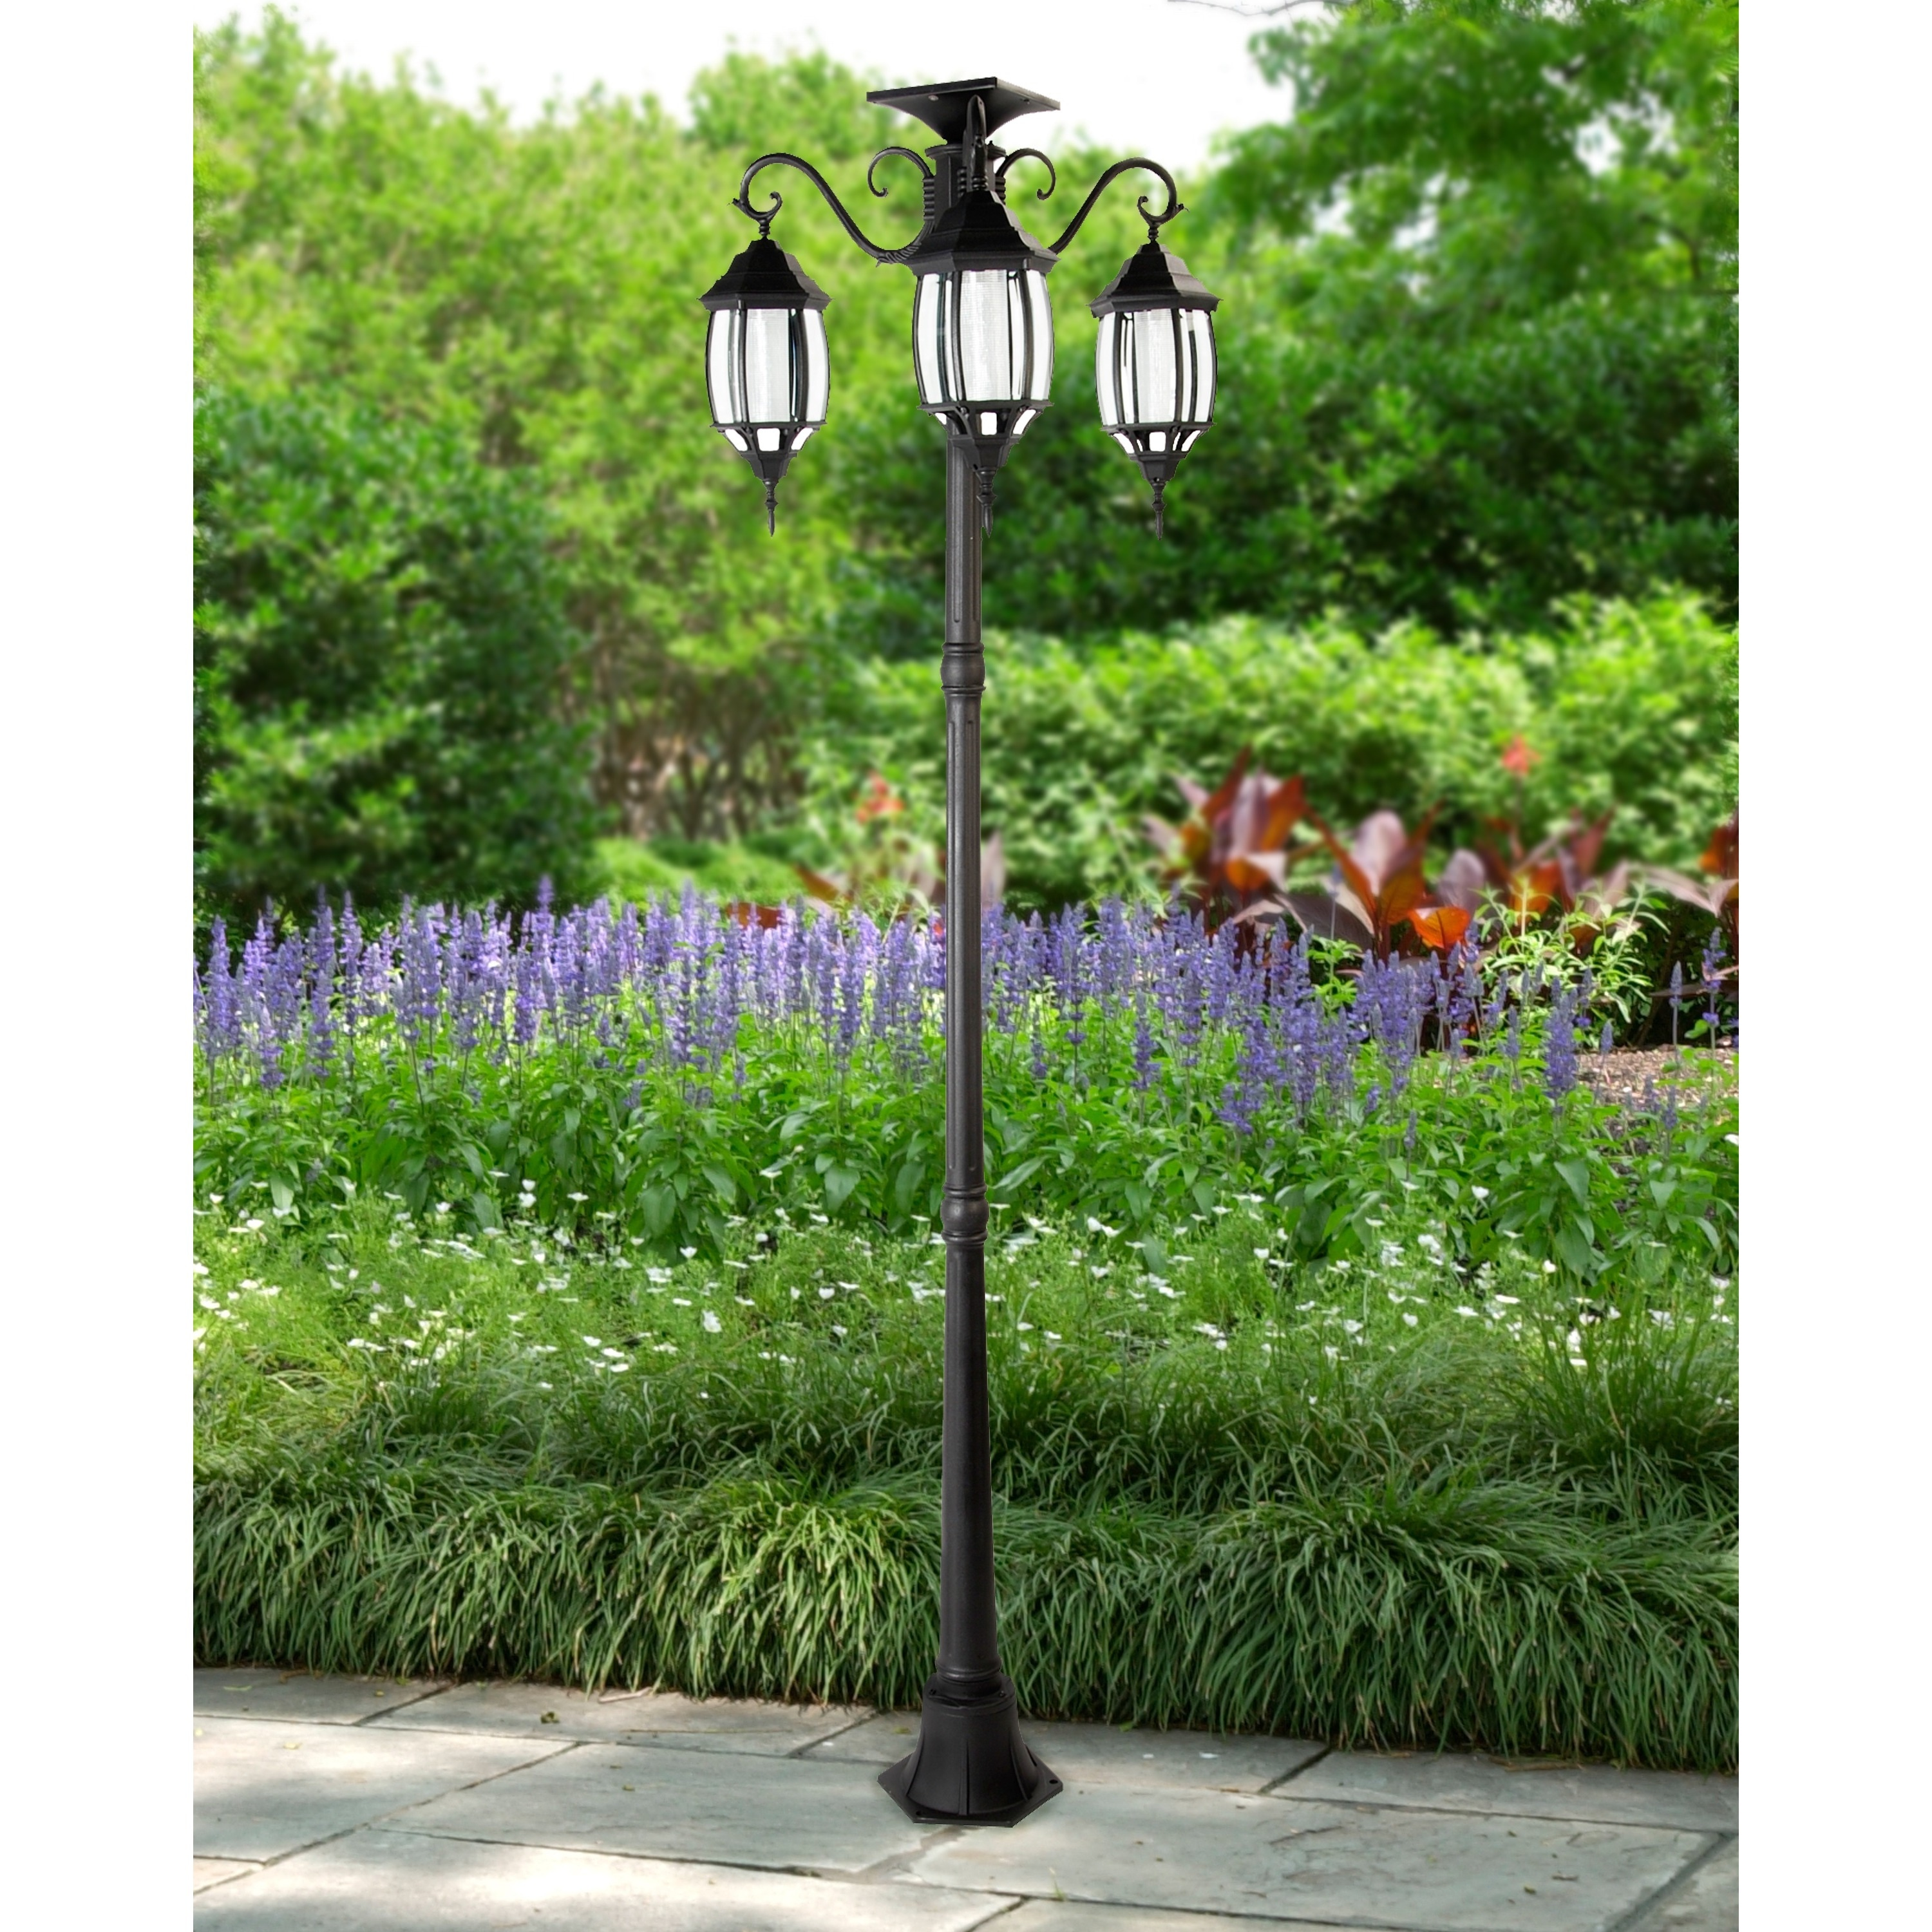 creativity light heads black base top outdoor lamp residential unbeatable posts lights post yard front